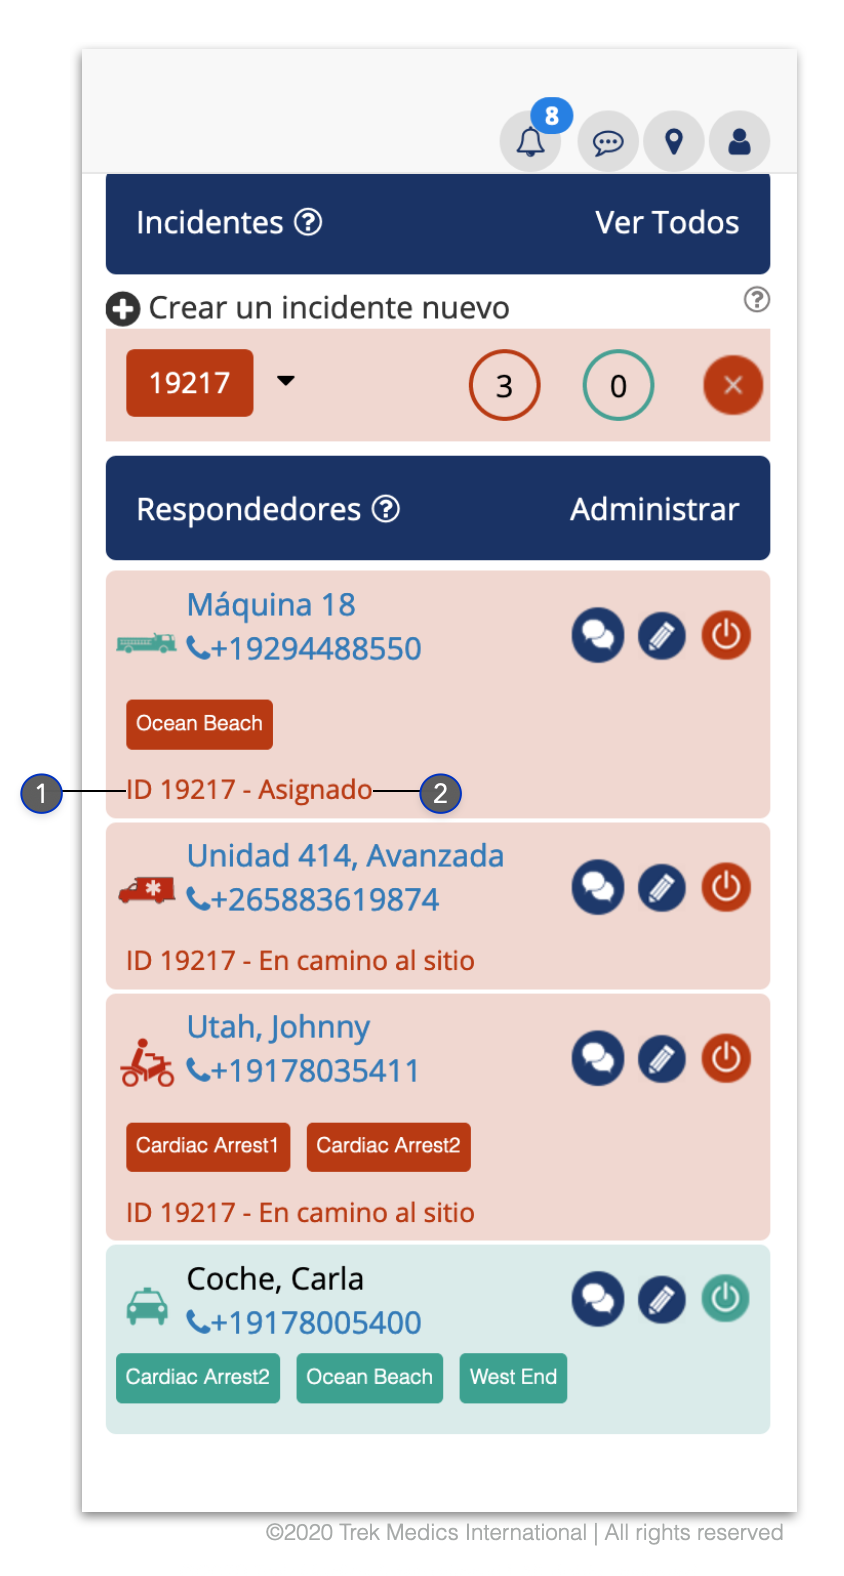 Ficha Respondedores - Despacho de Emergencia Beacon